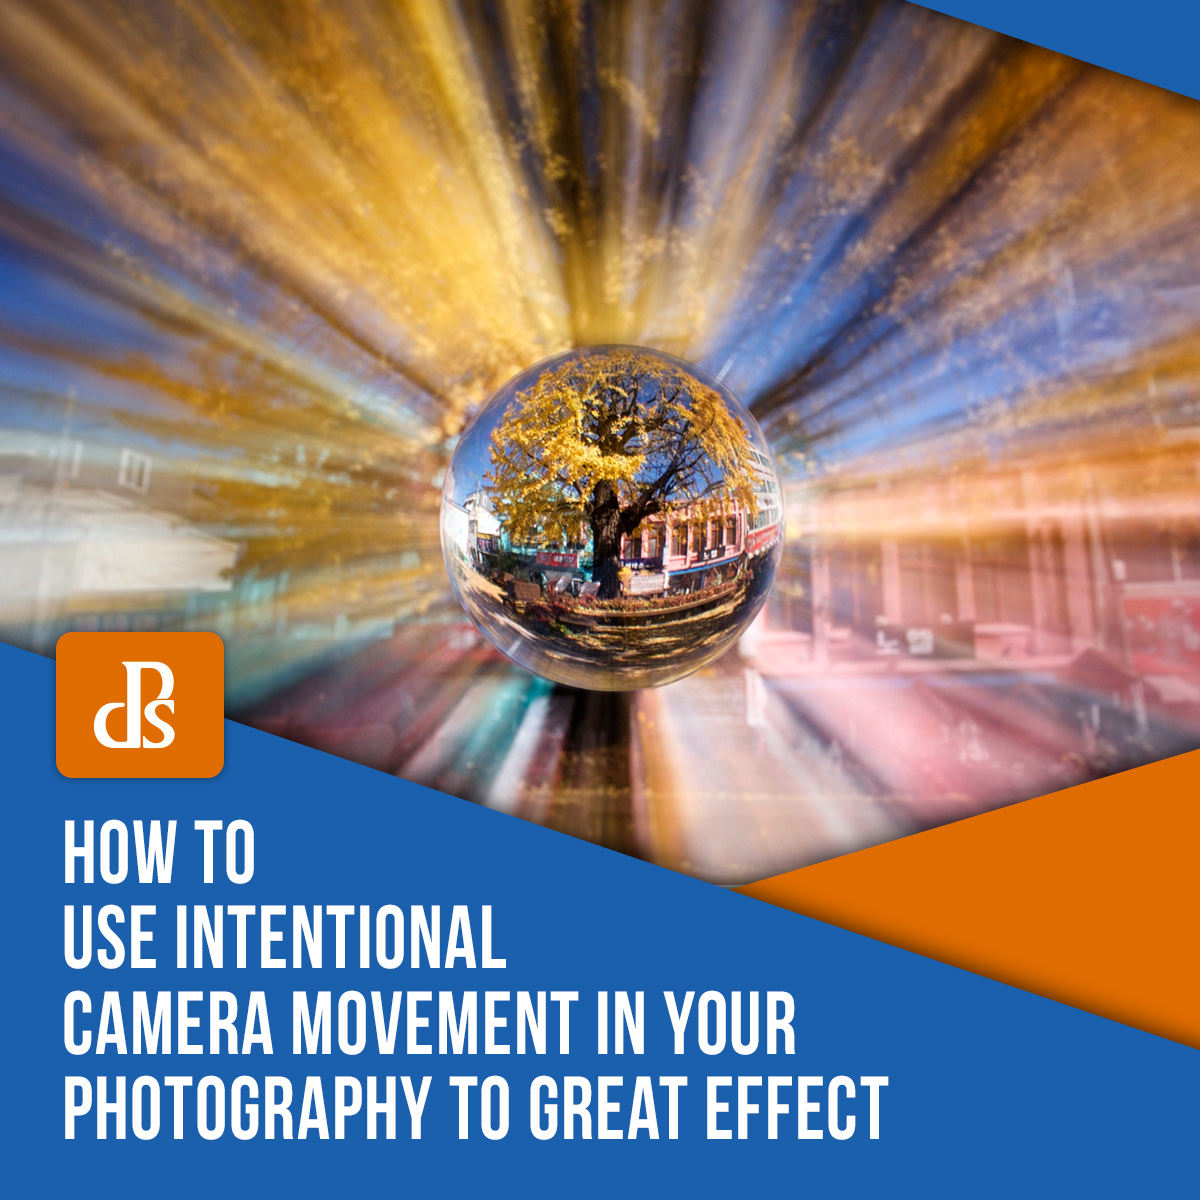 https://i0.wp.com/digital-photography-school.com/wp-content/uploads/2020/04/dps-how-to-use-intentional-camera-movement.jpg?ssl=1